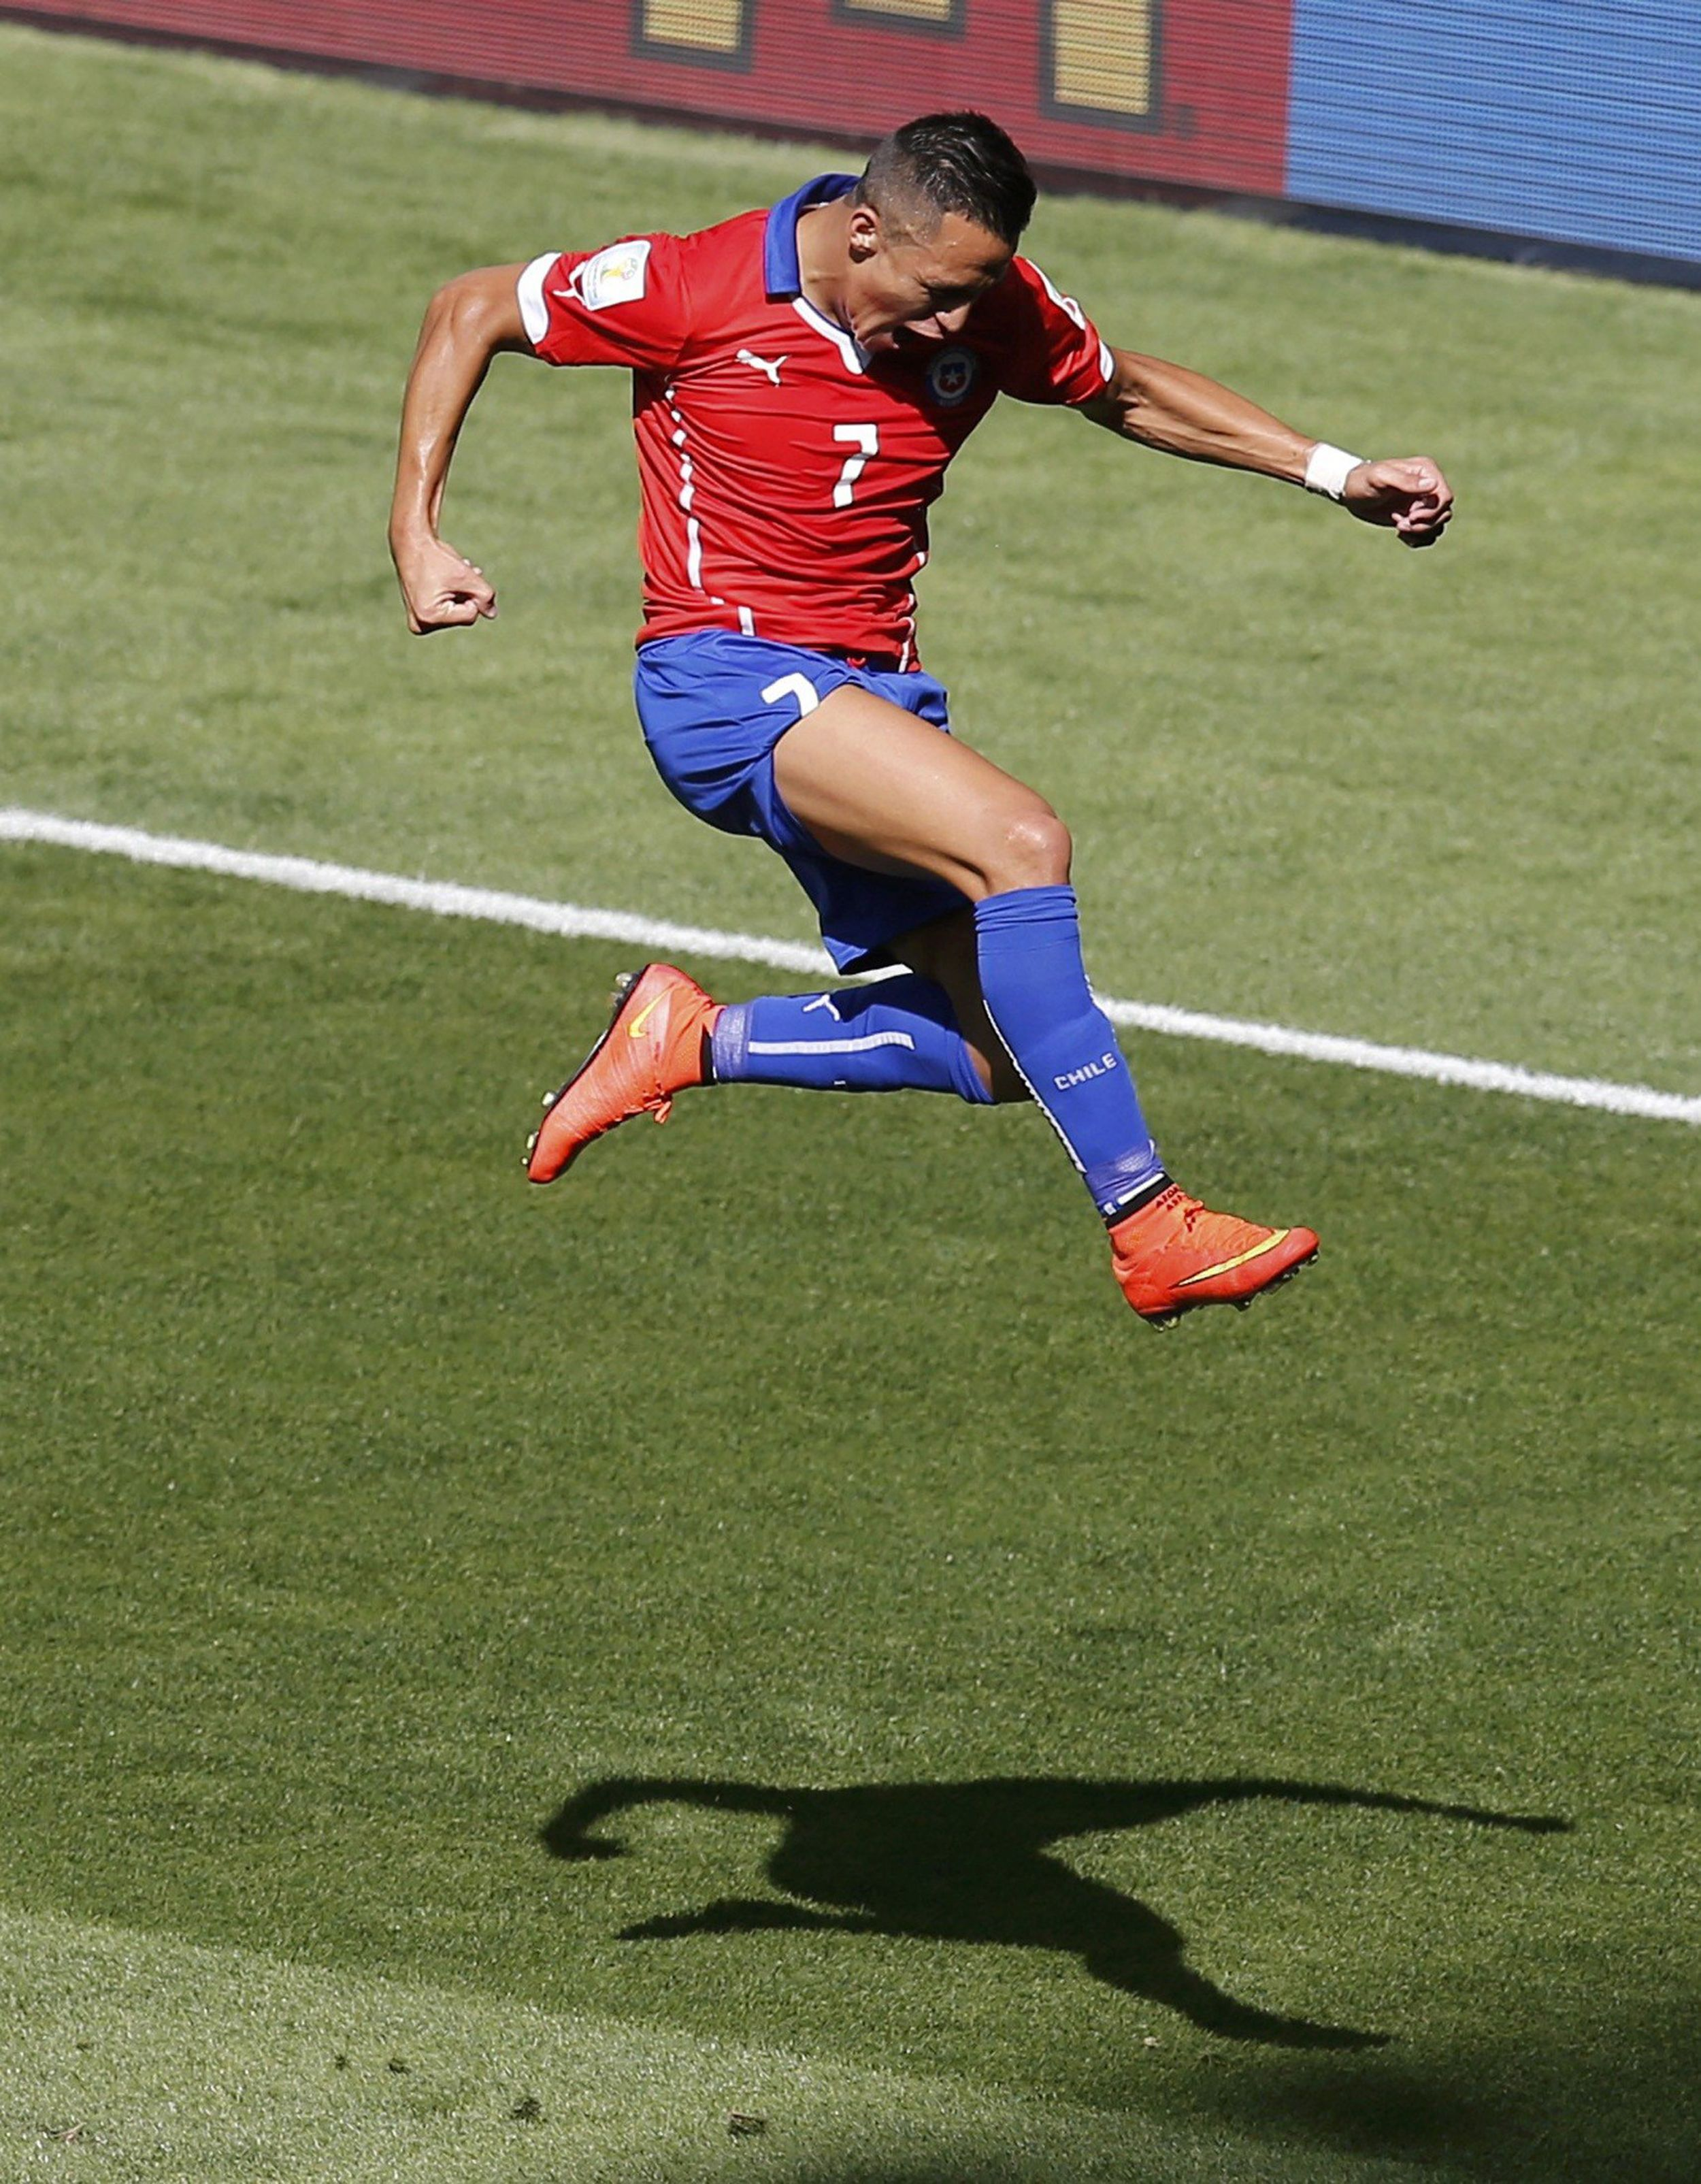 Alexis Sanchez of Chile against Brazil in the 2014 World Cup